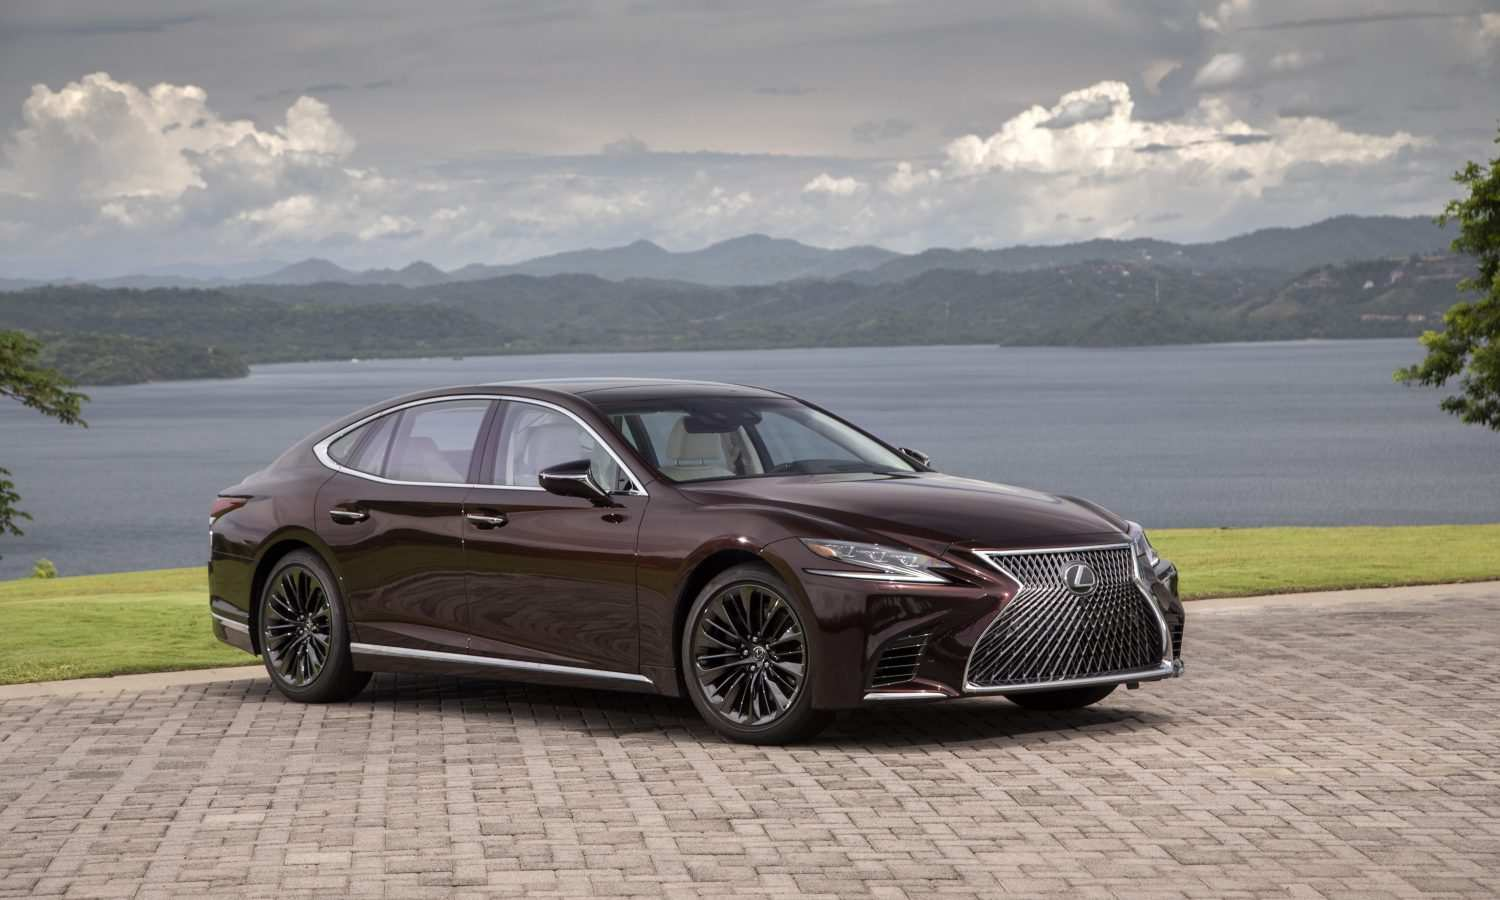 44 All New Lexus Is 2020 Style